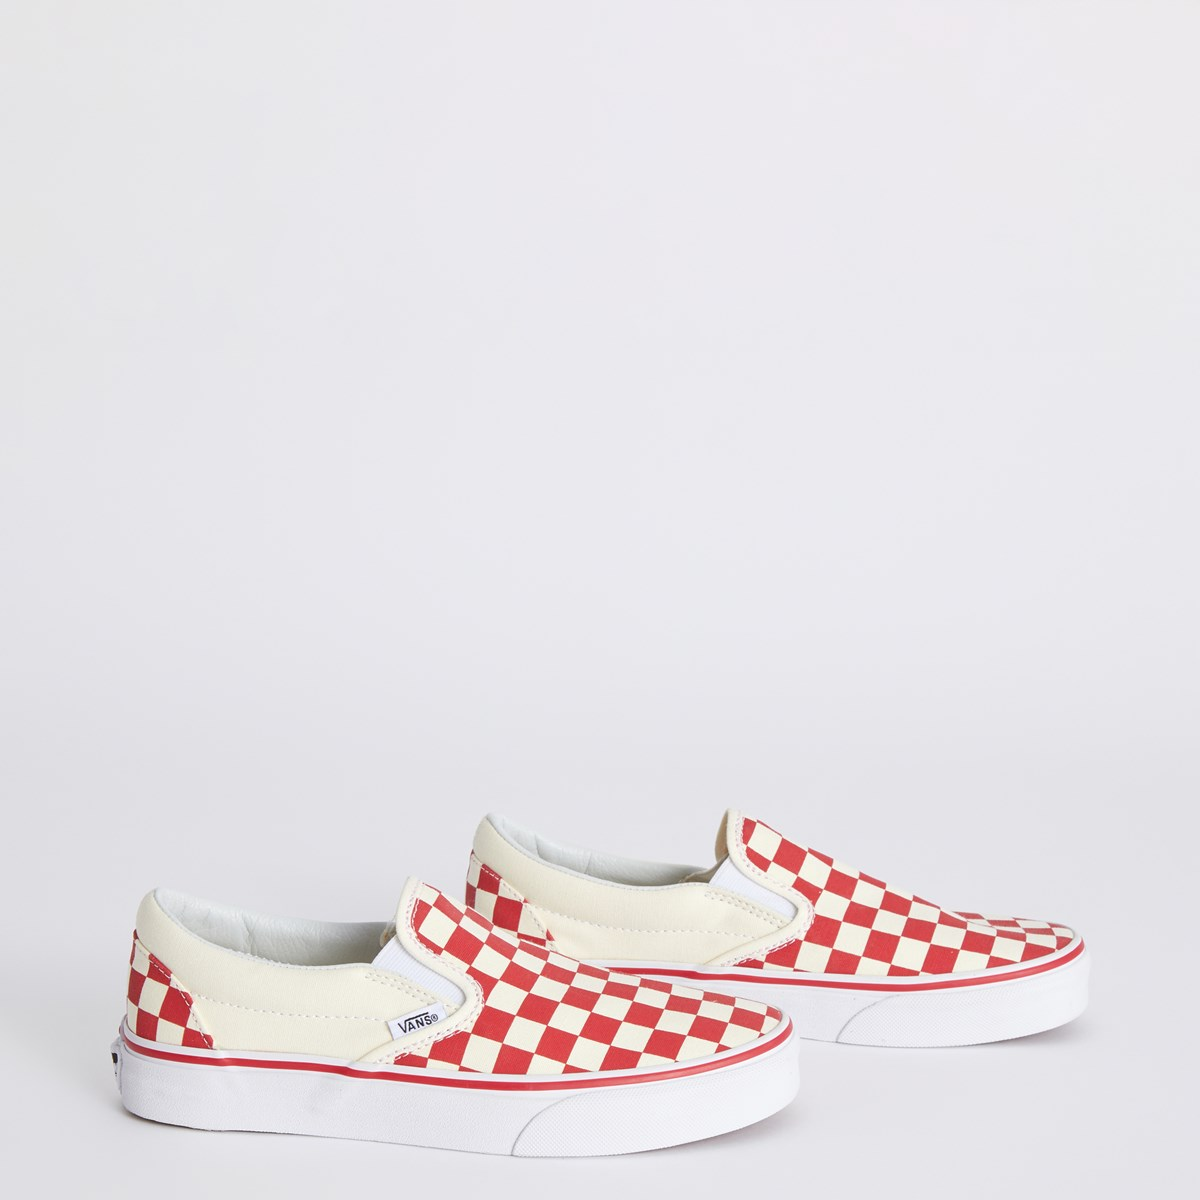 Primary Check Slip Ons in Racing Red